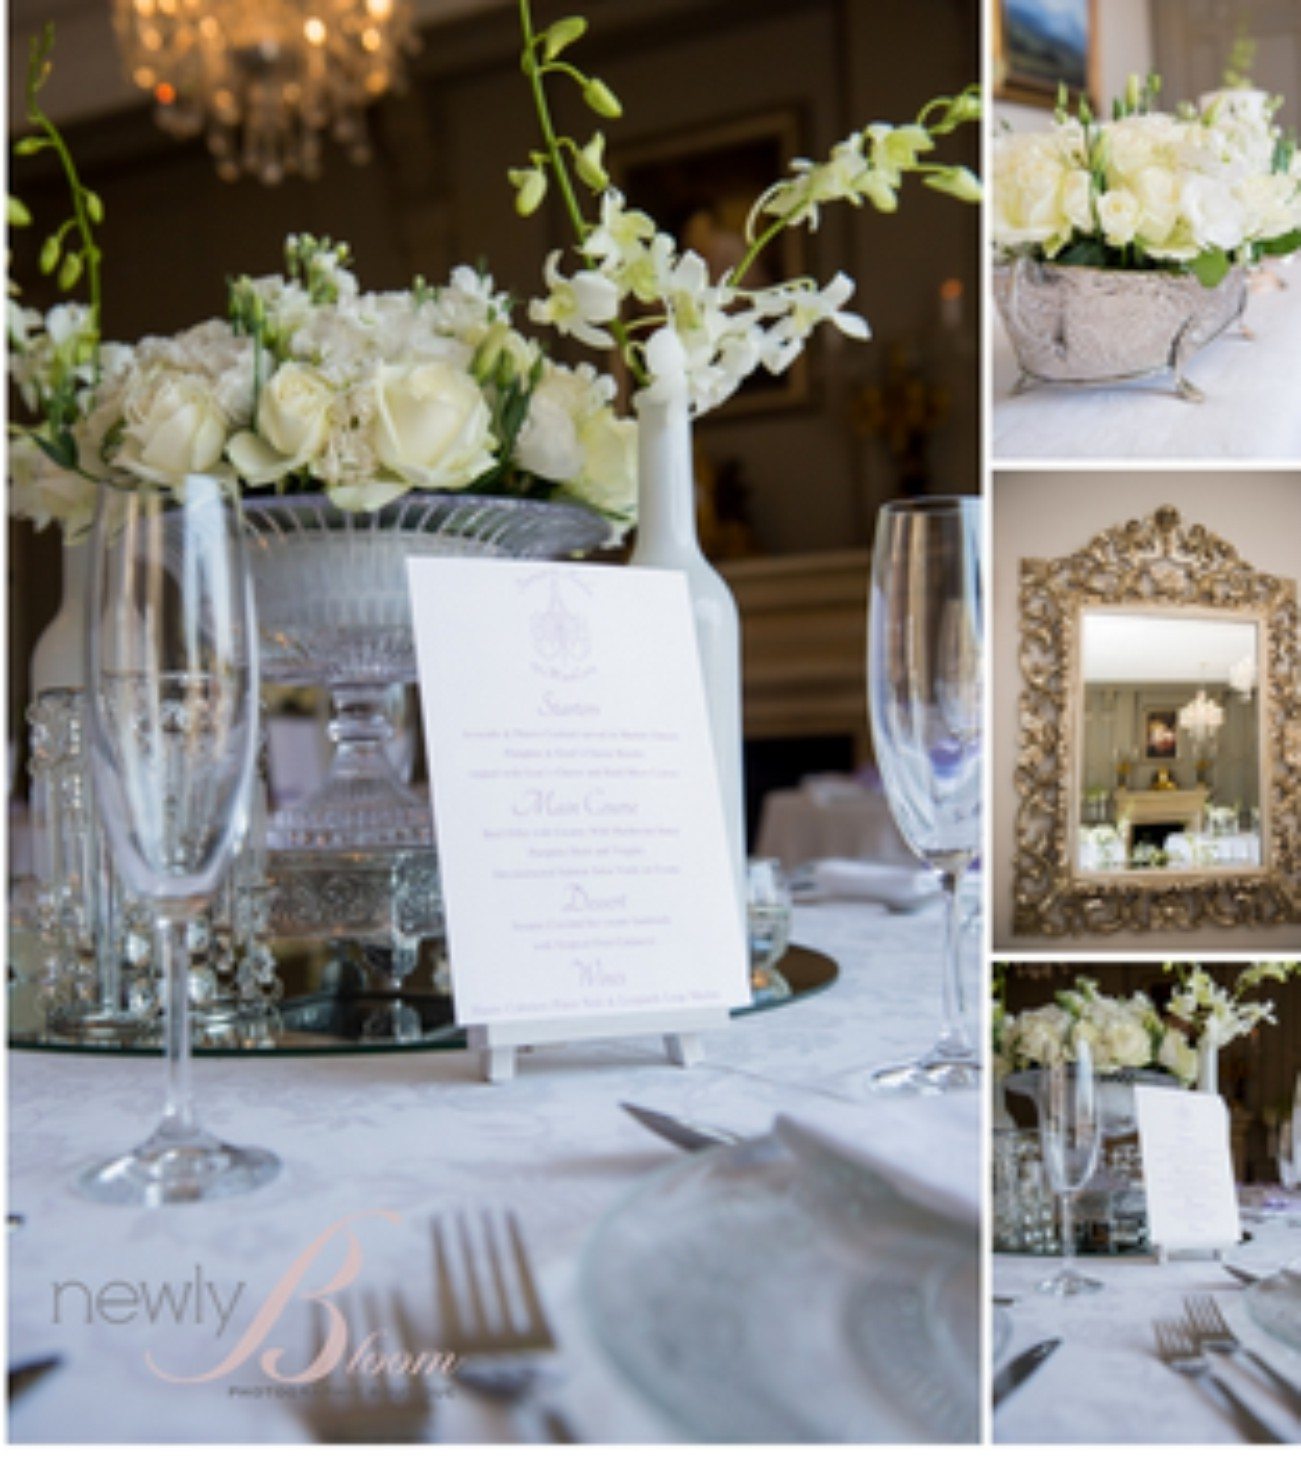 Images of wedding decor Trendy Settings  Wedding Decor Stationery and Styling